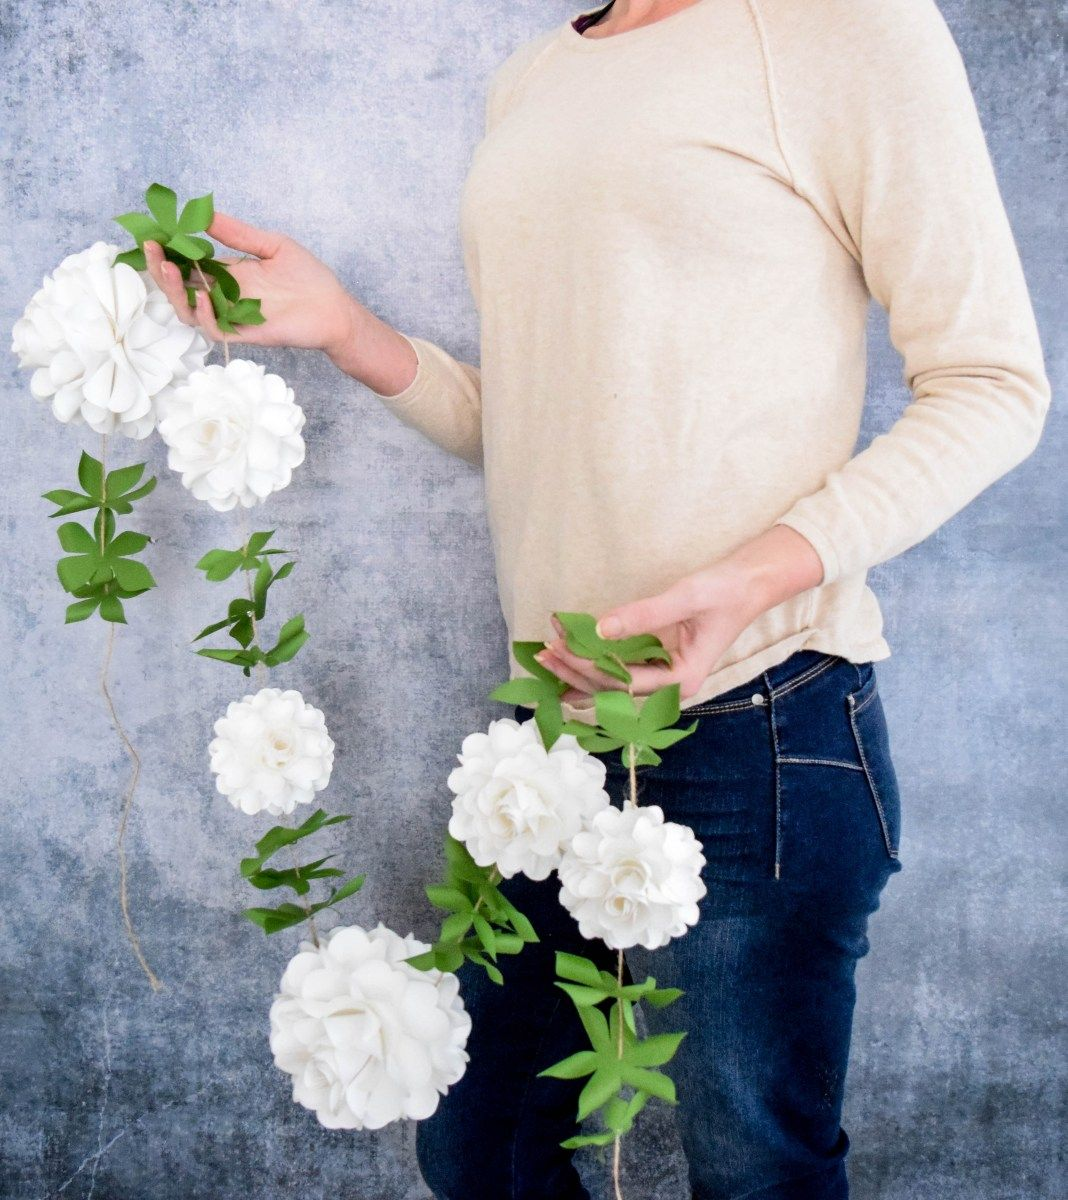 Learn how to make Tissue Paper Flowers or Topiary Balls. - YouTube | 1200x1068